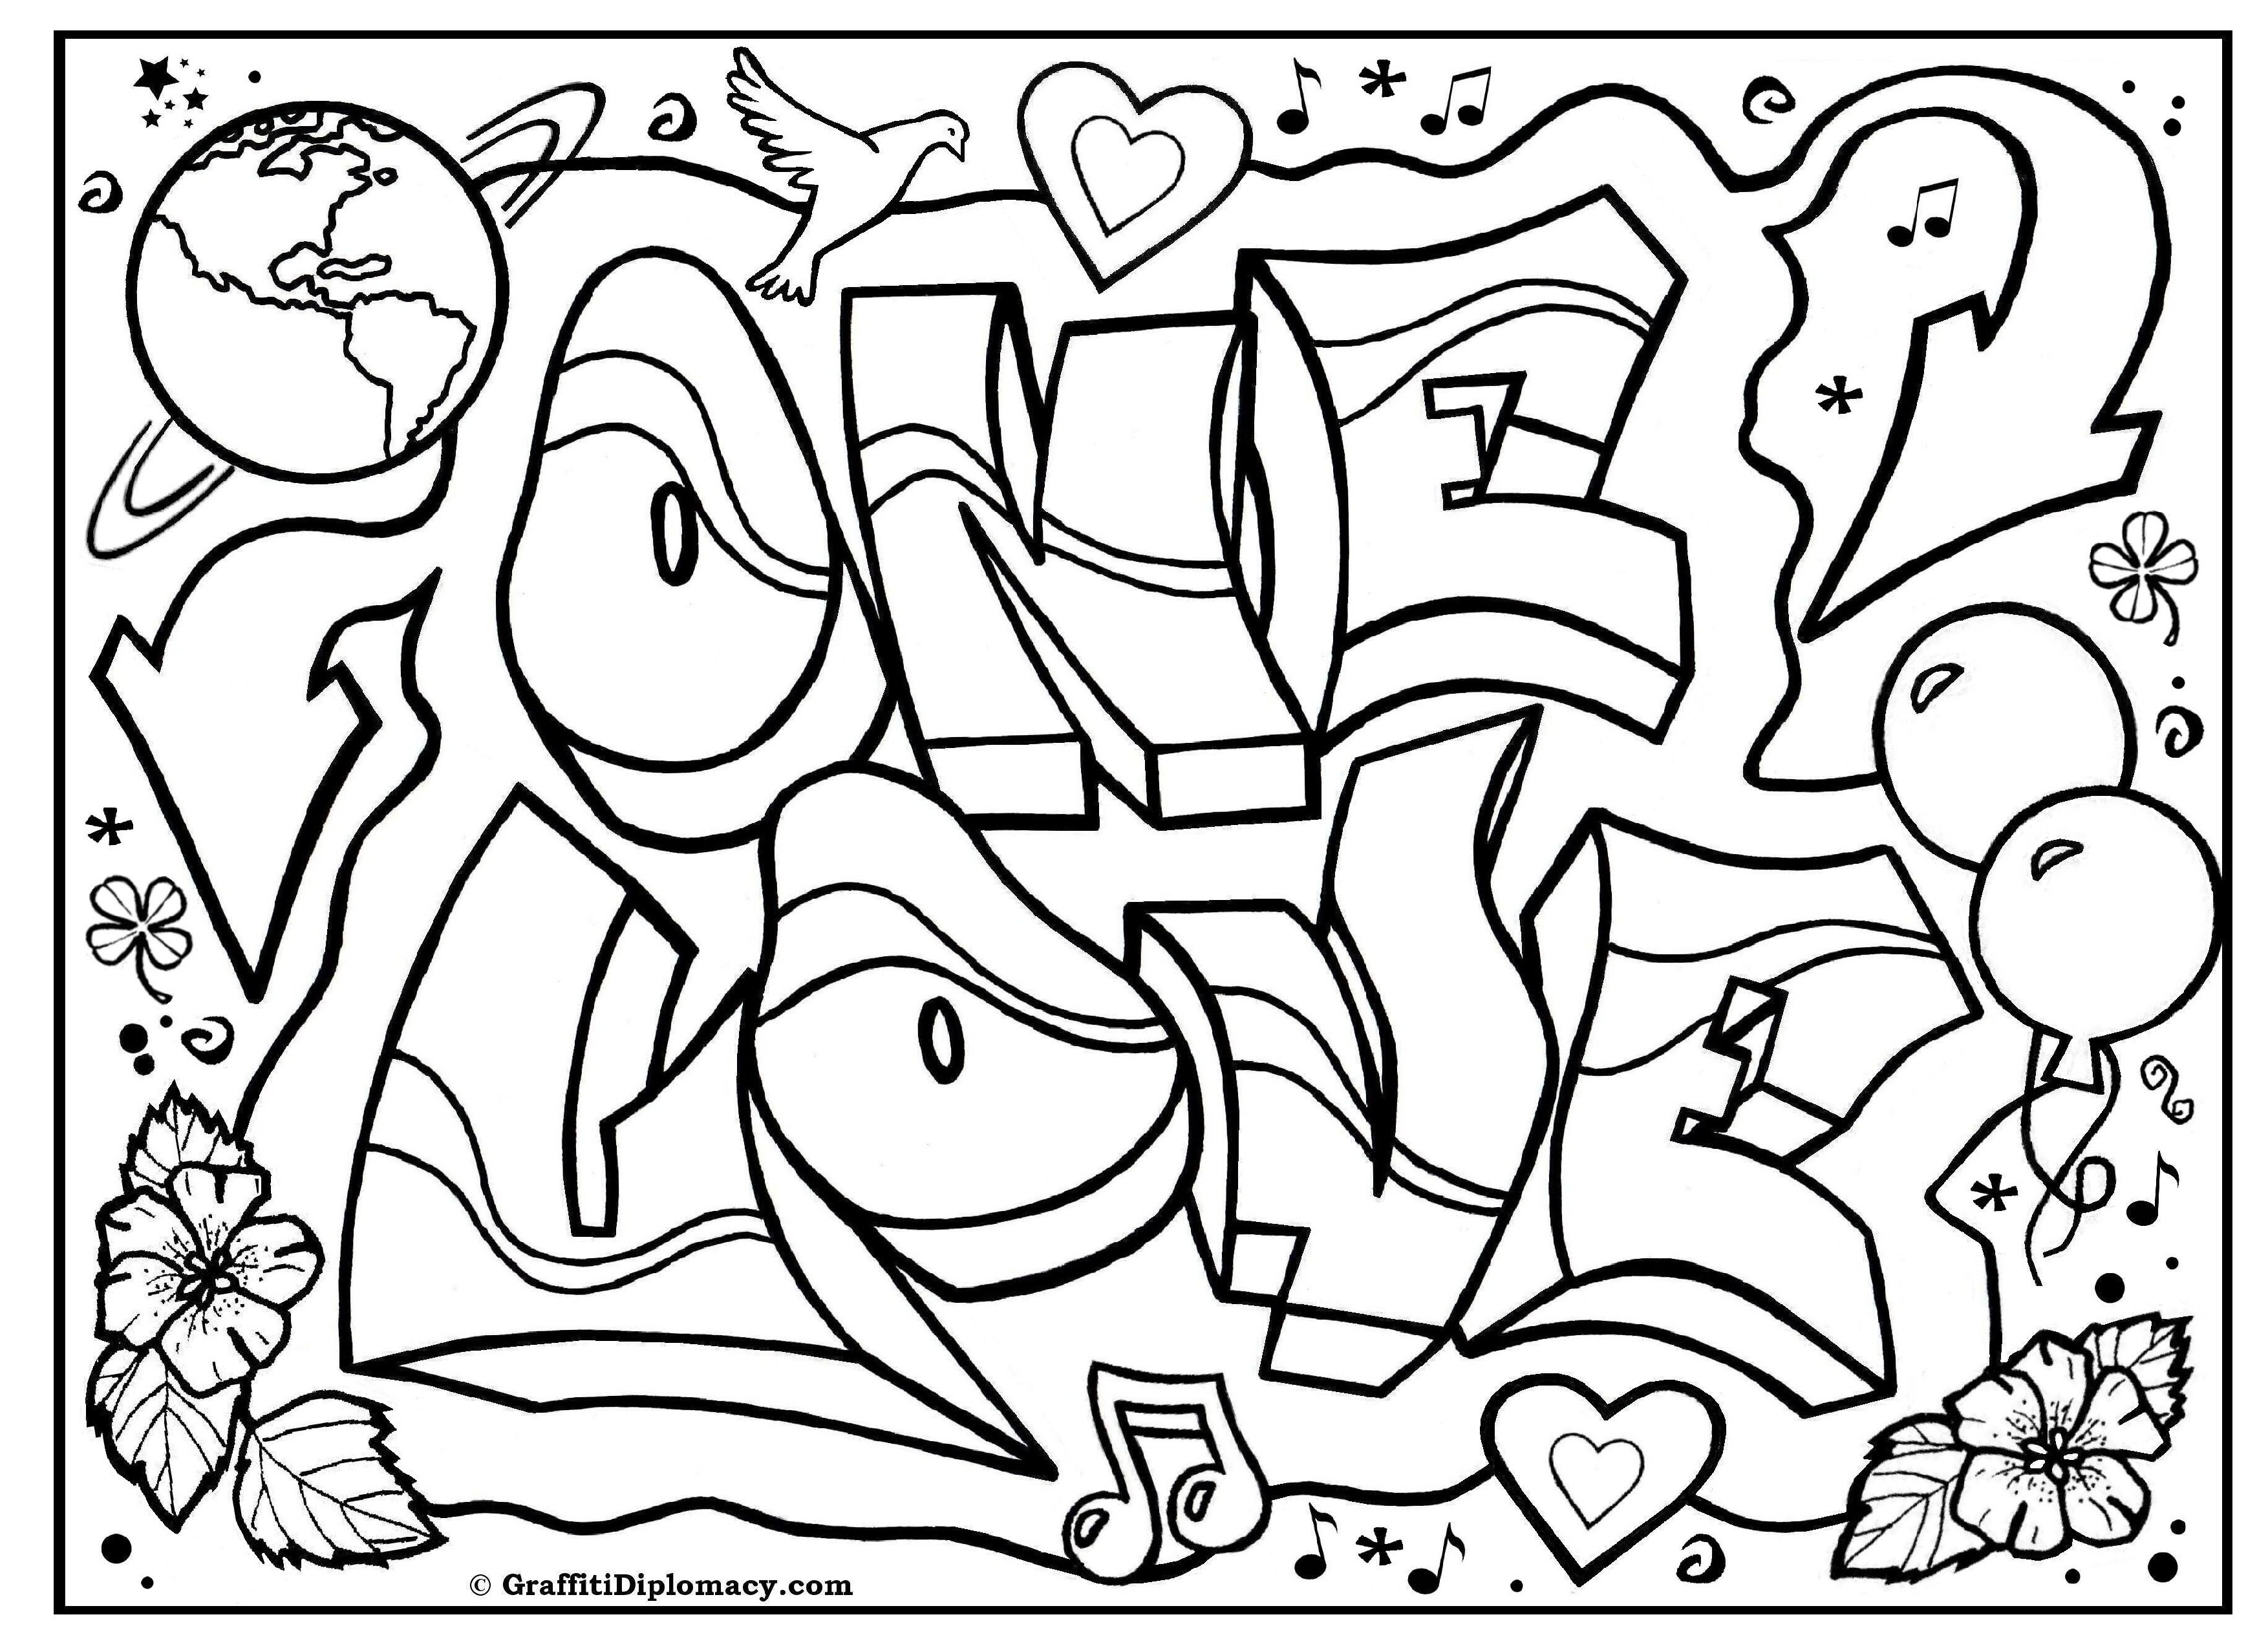 Coloring Ideas : 58 Marvelous Free Printable Coloring Pages For - Free Printable Coloring Pages For Teens